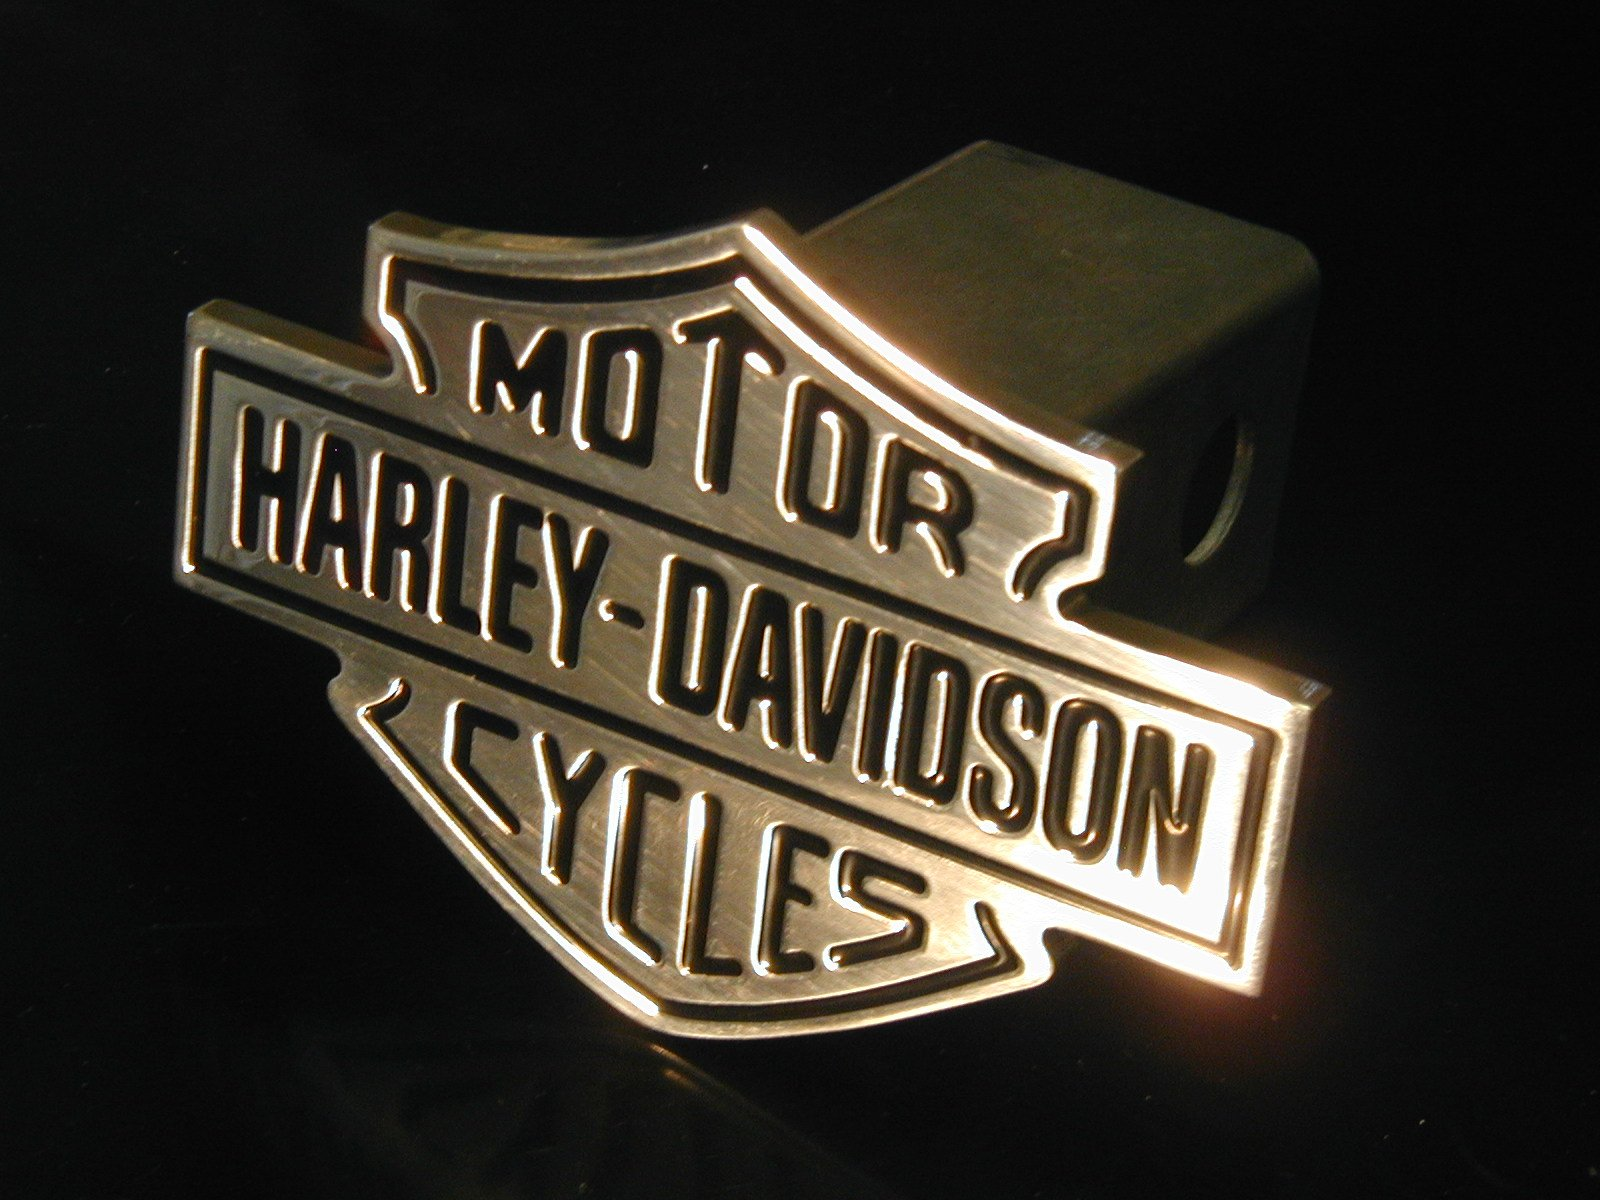 Harley Davidson Hitchcover by CMT